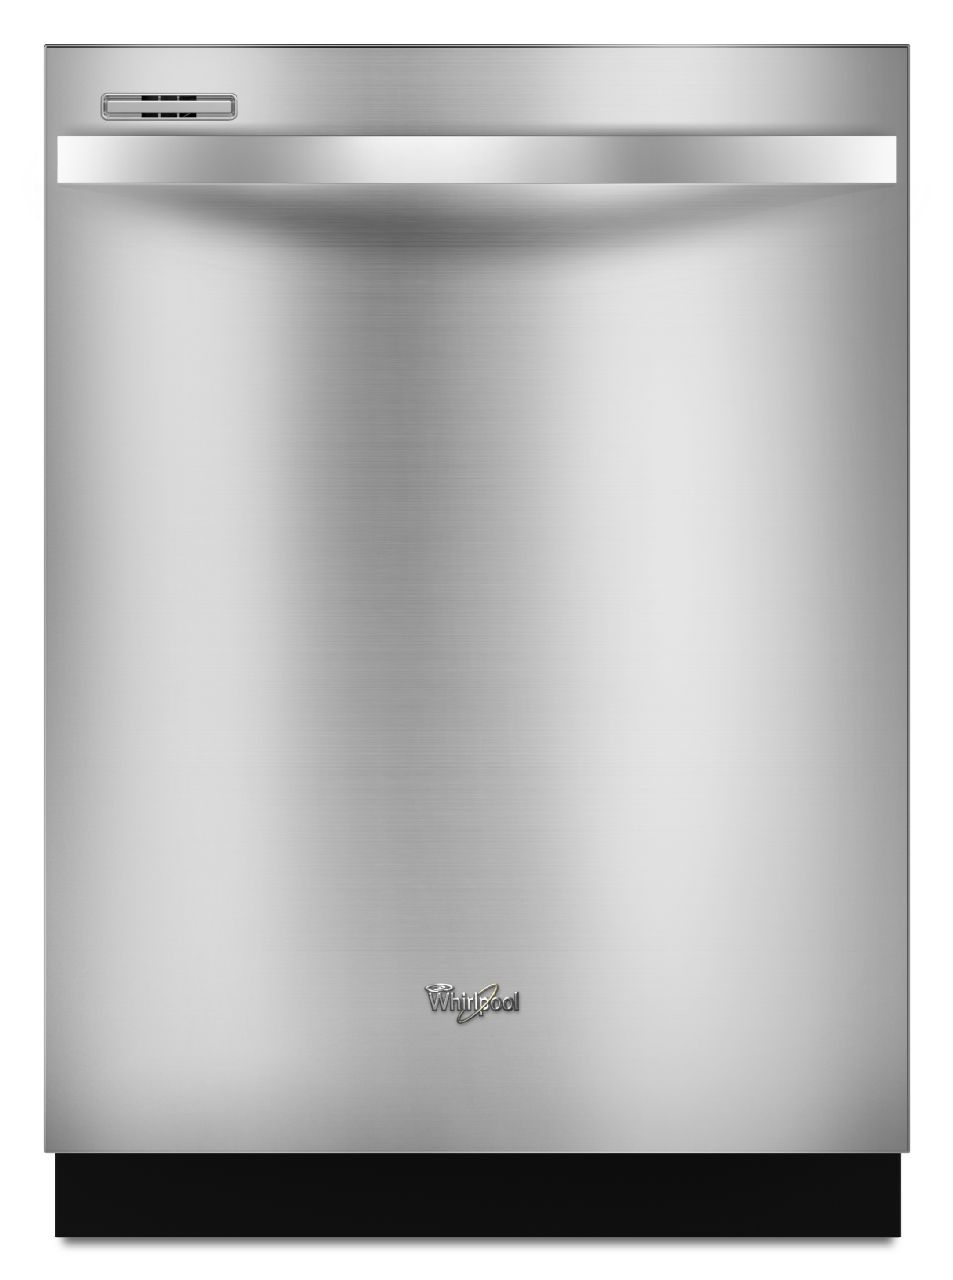 whirlpool central water filtration system manual